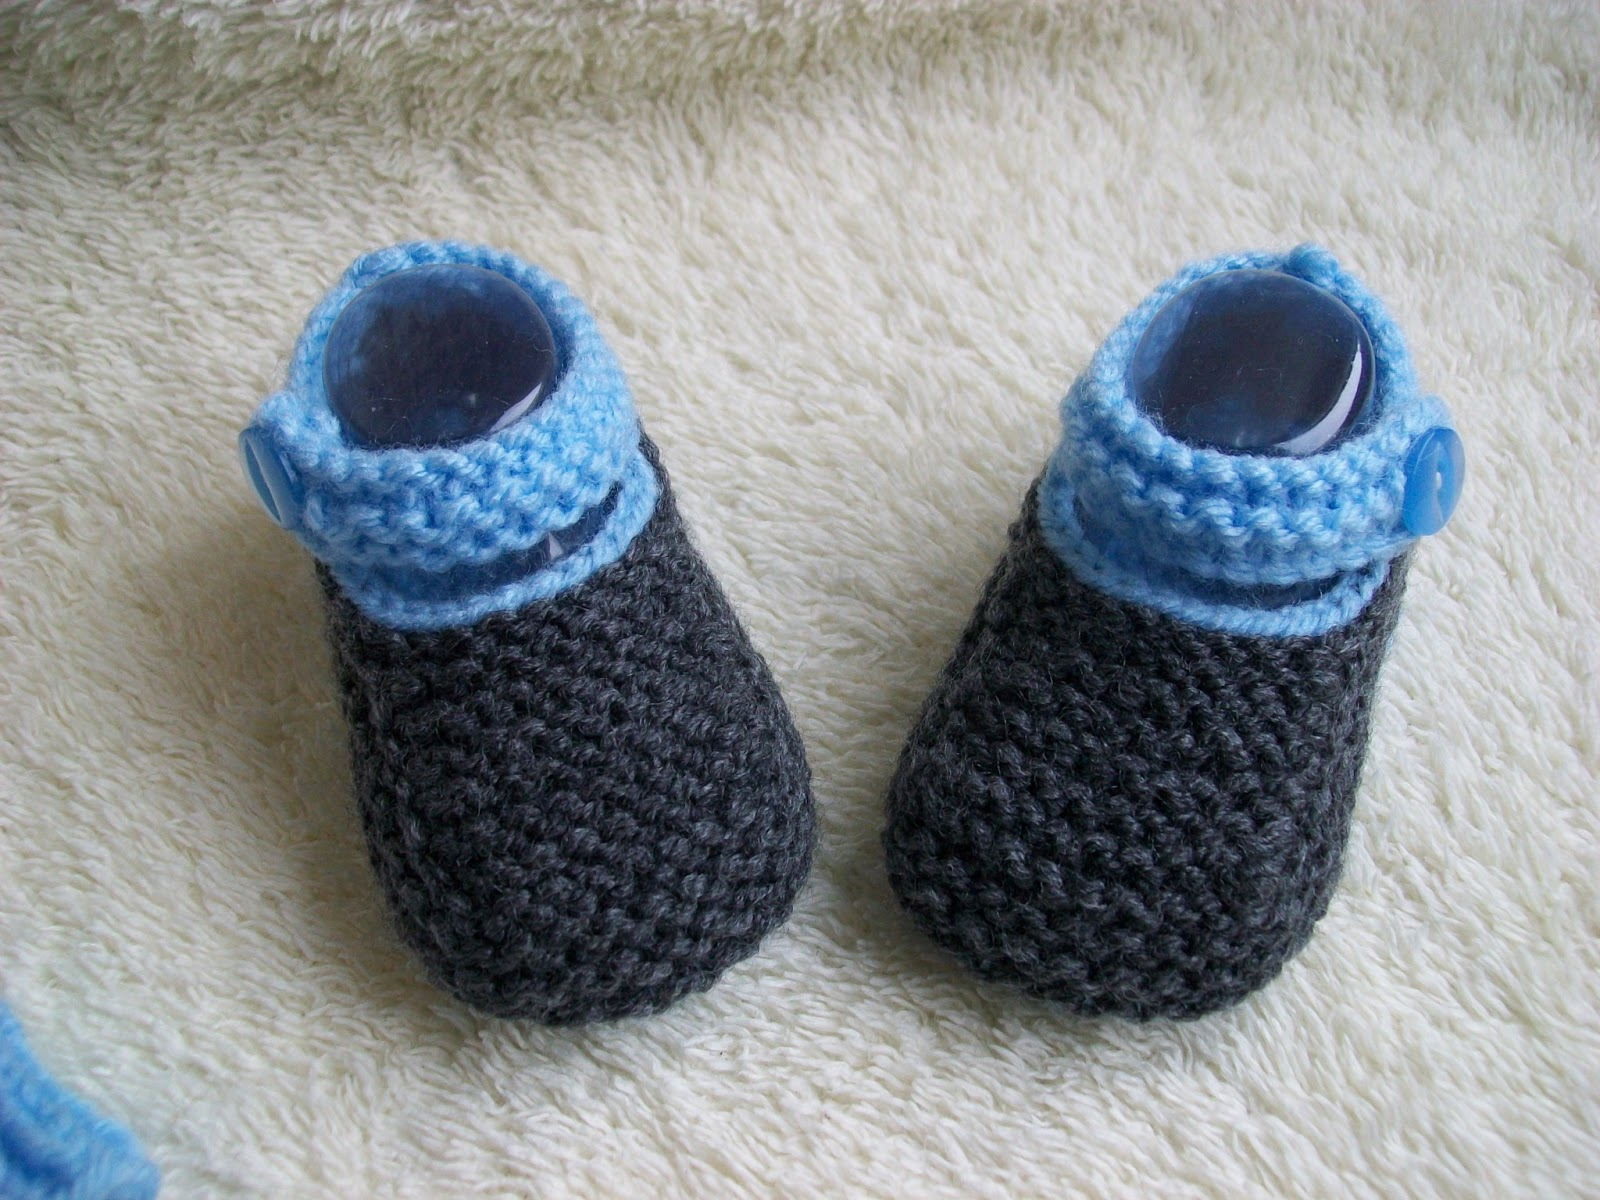 Free Baby Knitting Patterns 8 Ply 30 Free Patterns For Knitted Ba Booties Guide Patterns